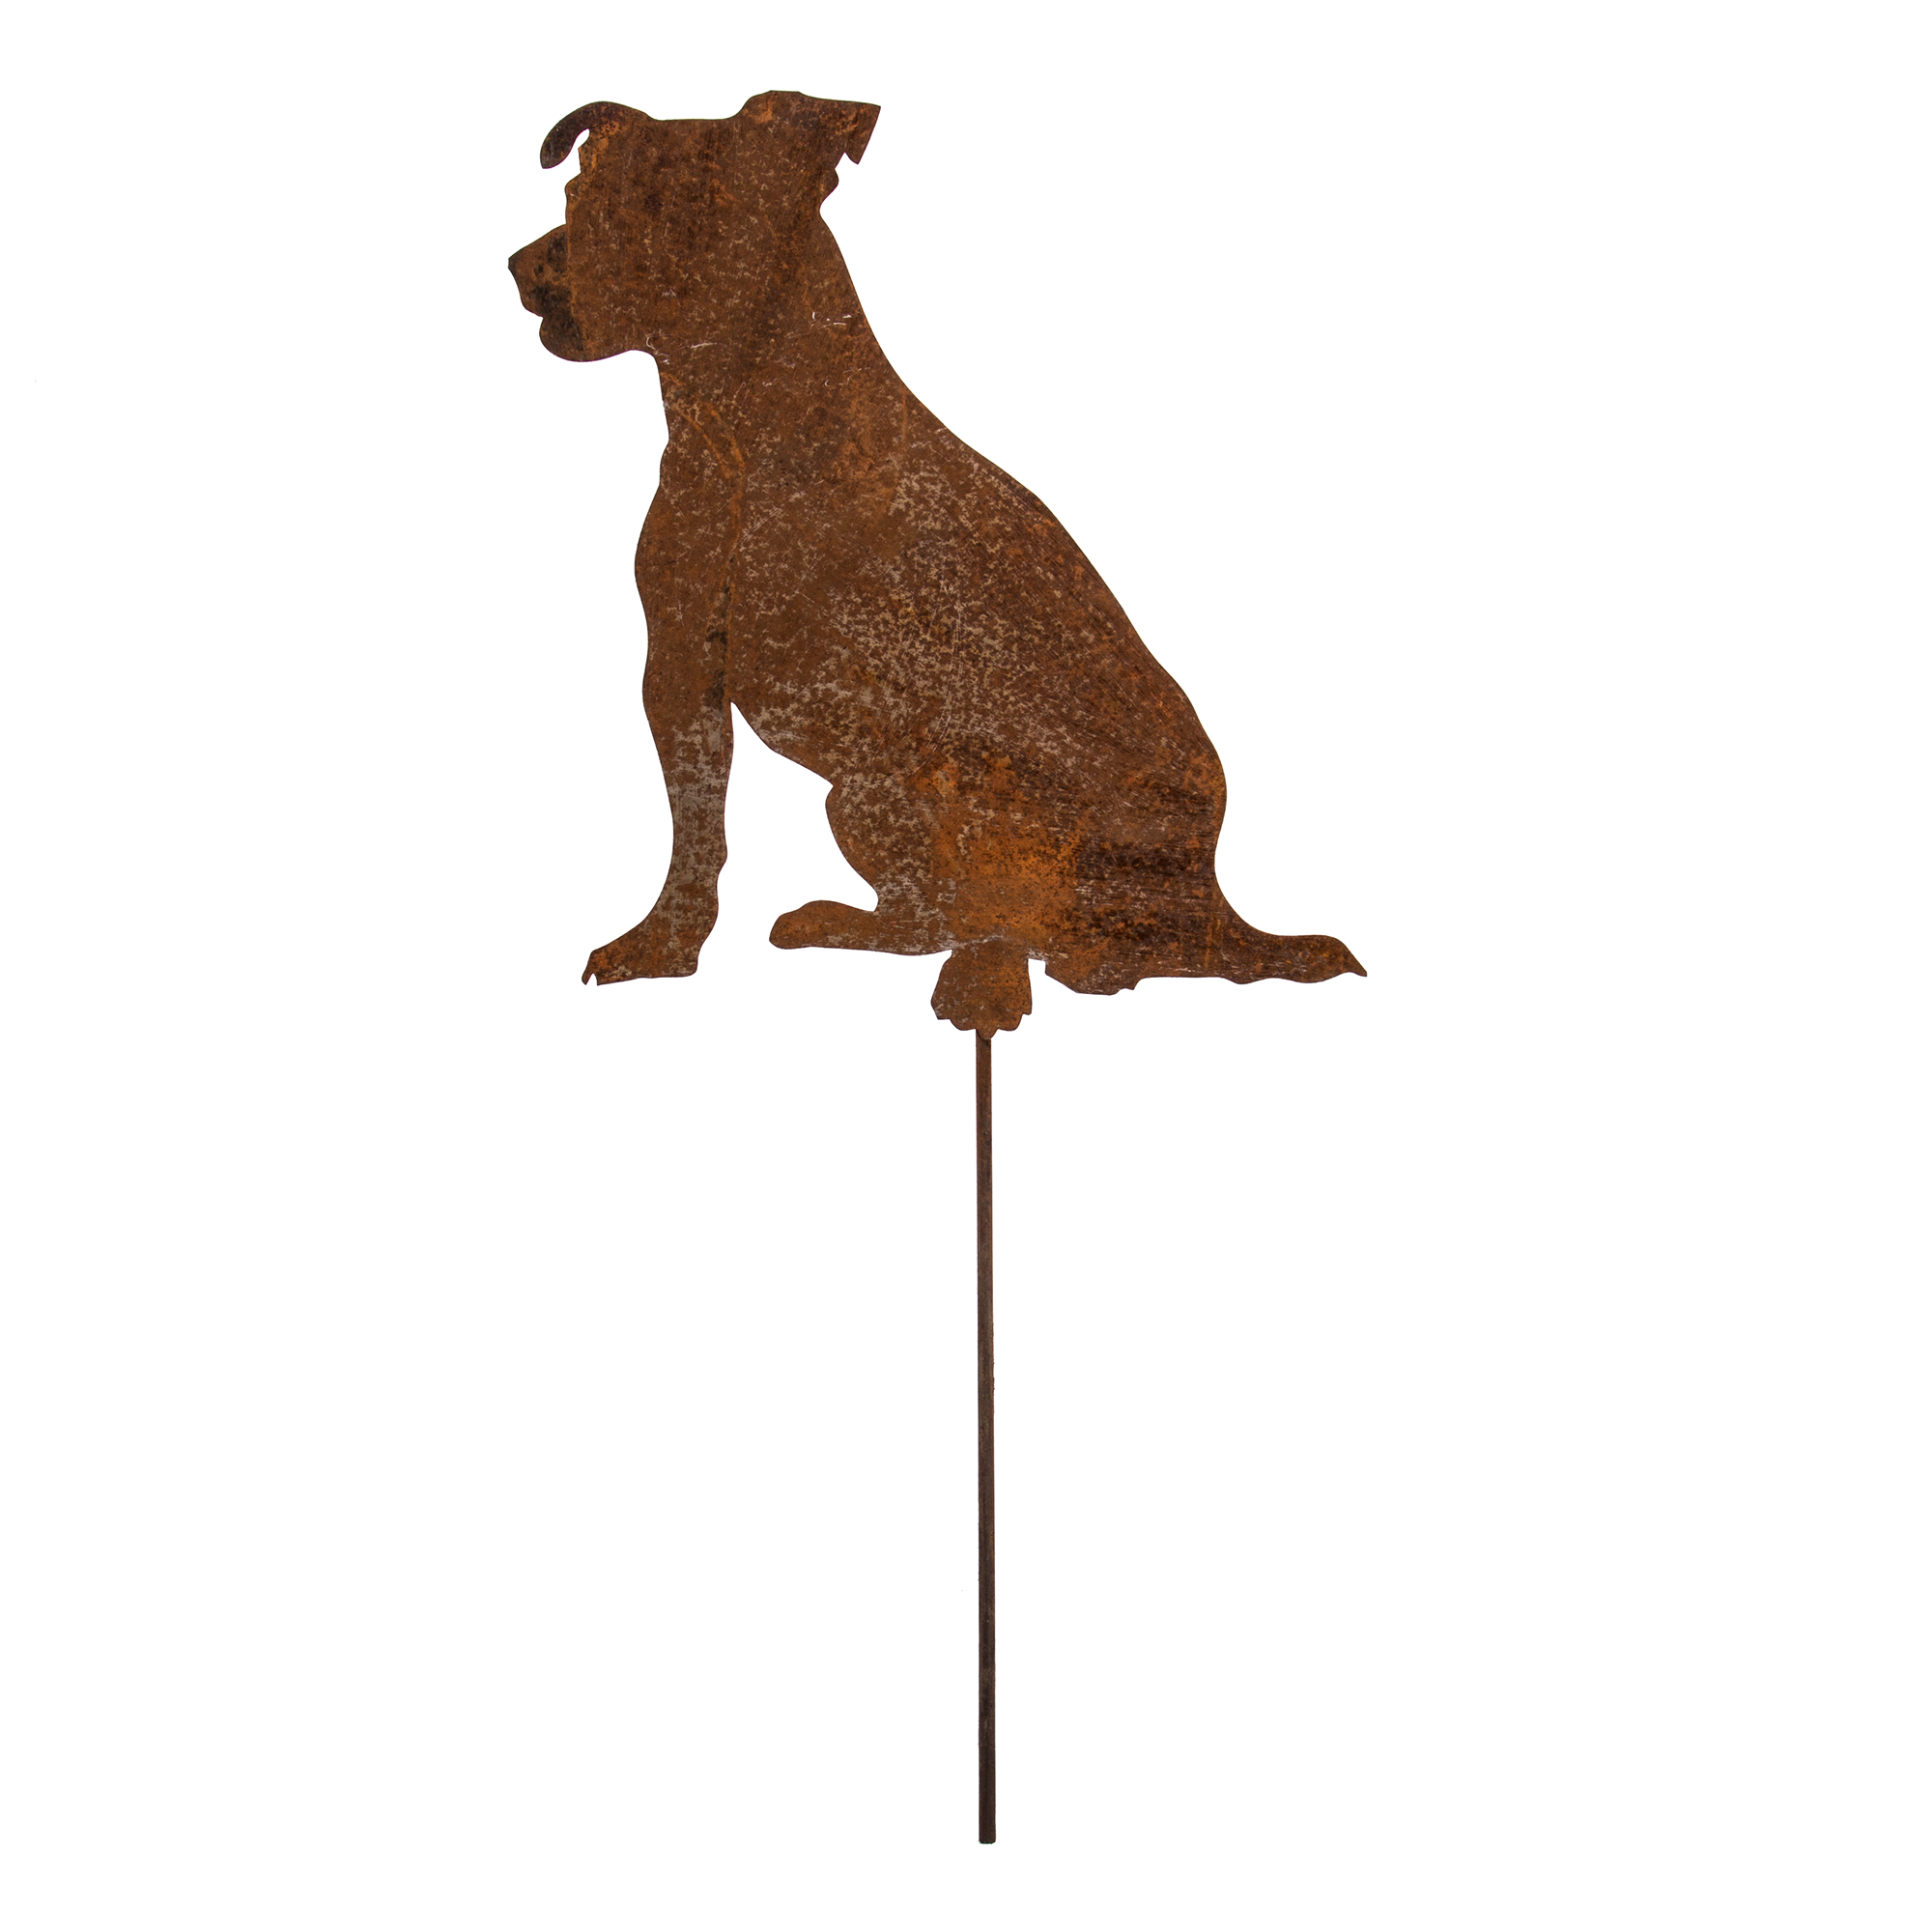 Gartenstecker edelrost hund 35cm x 38cm mit metallstab for Gartenstecker edelrost